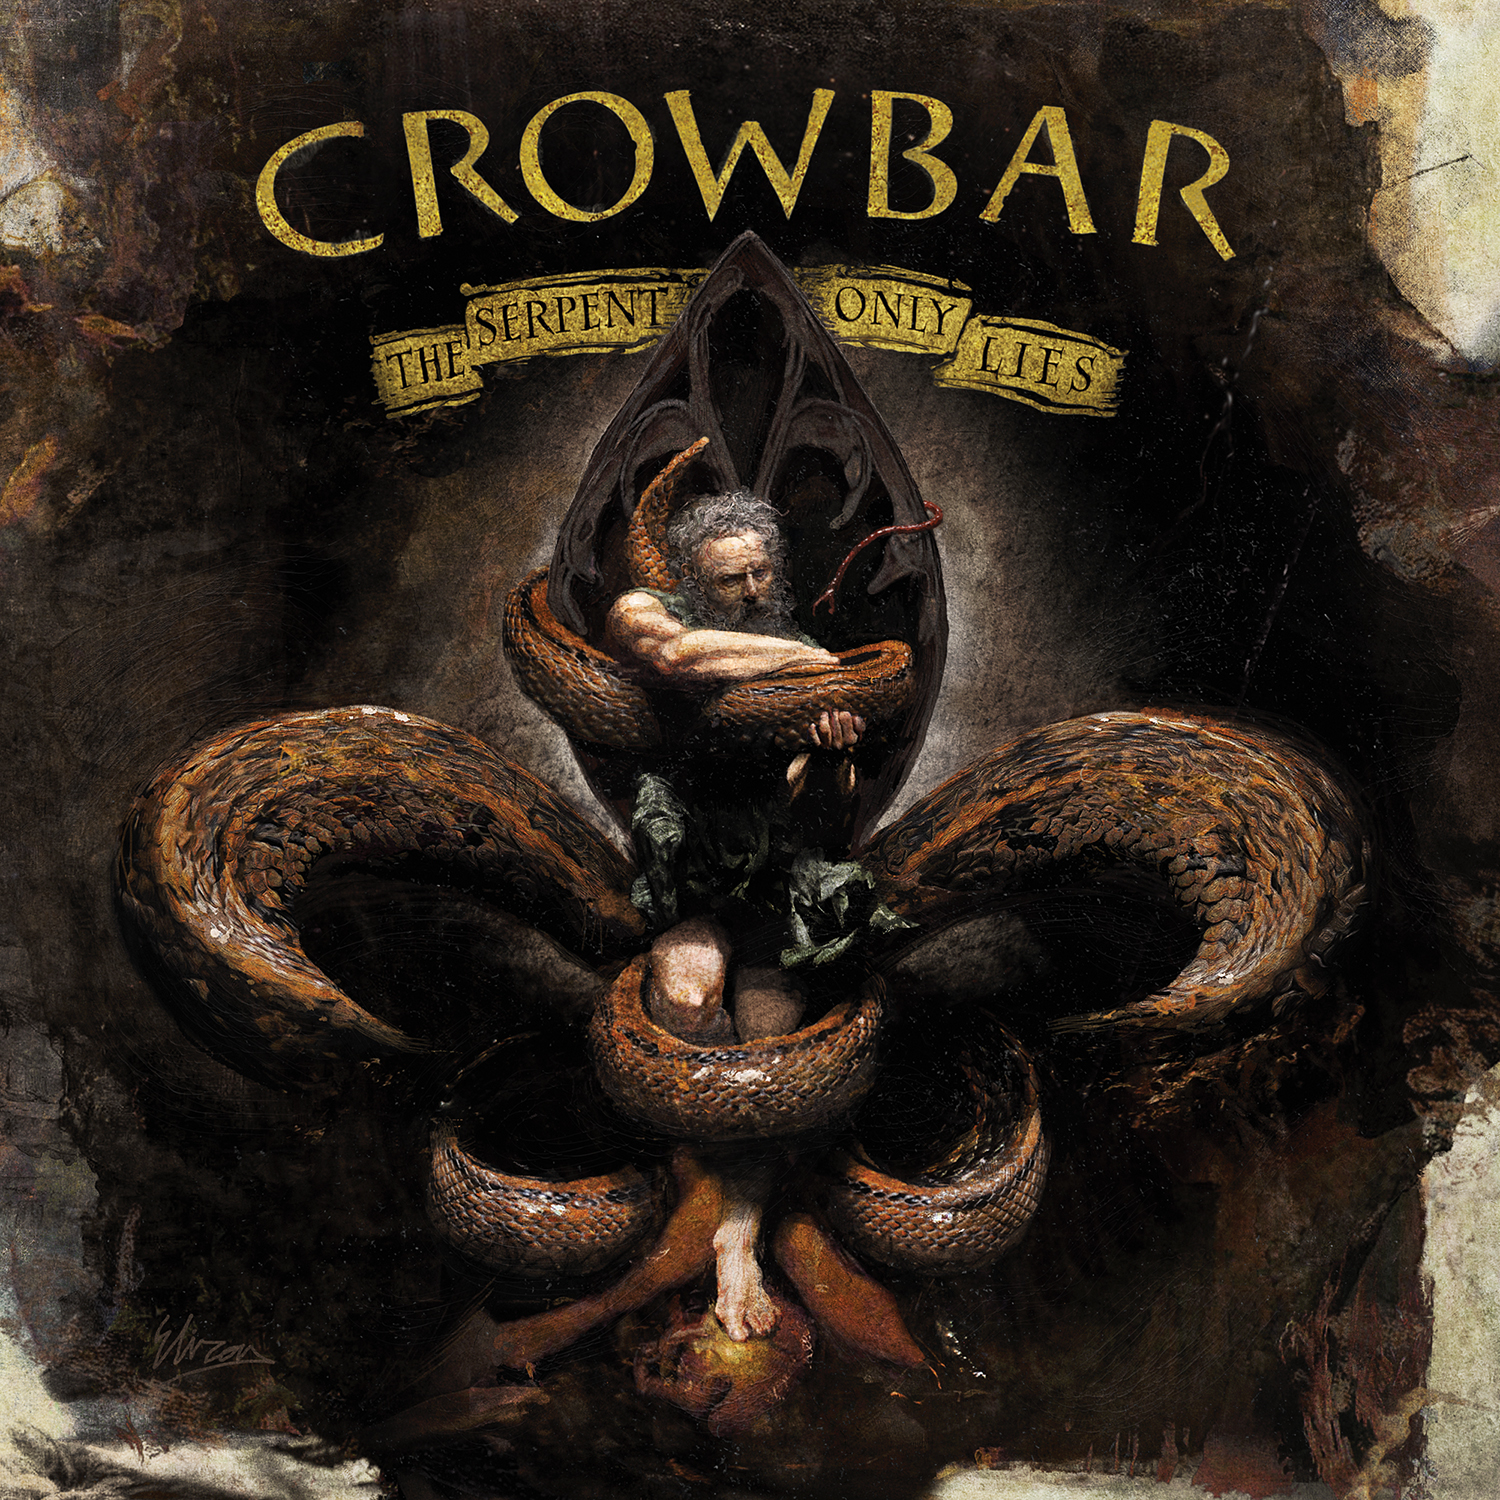 crowbar_theserpentonlylies_cover